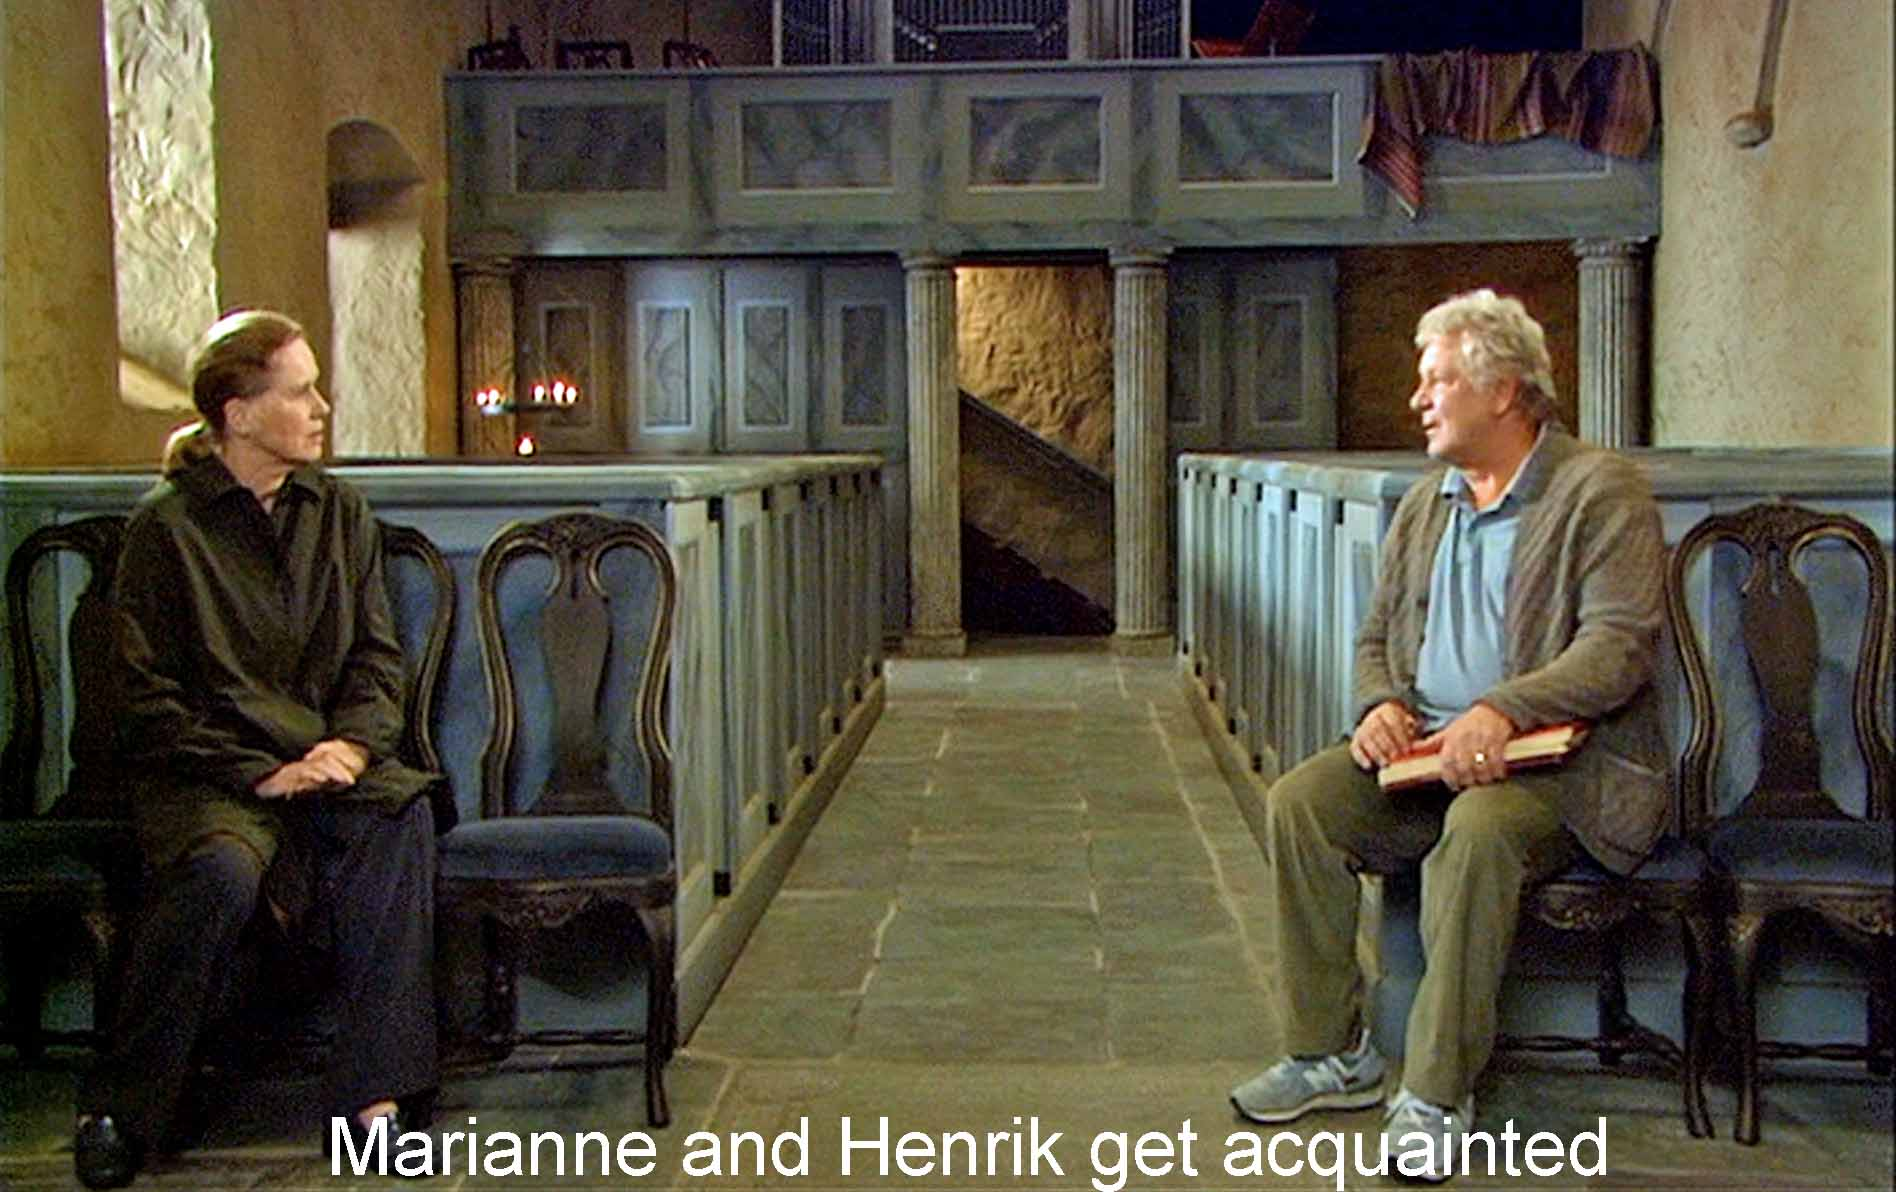 Marianne and Henrik get acquainted